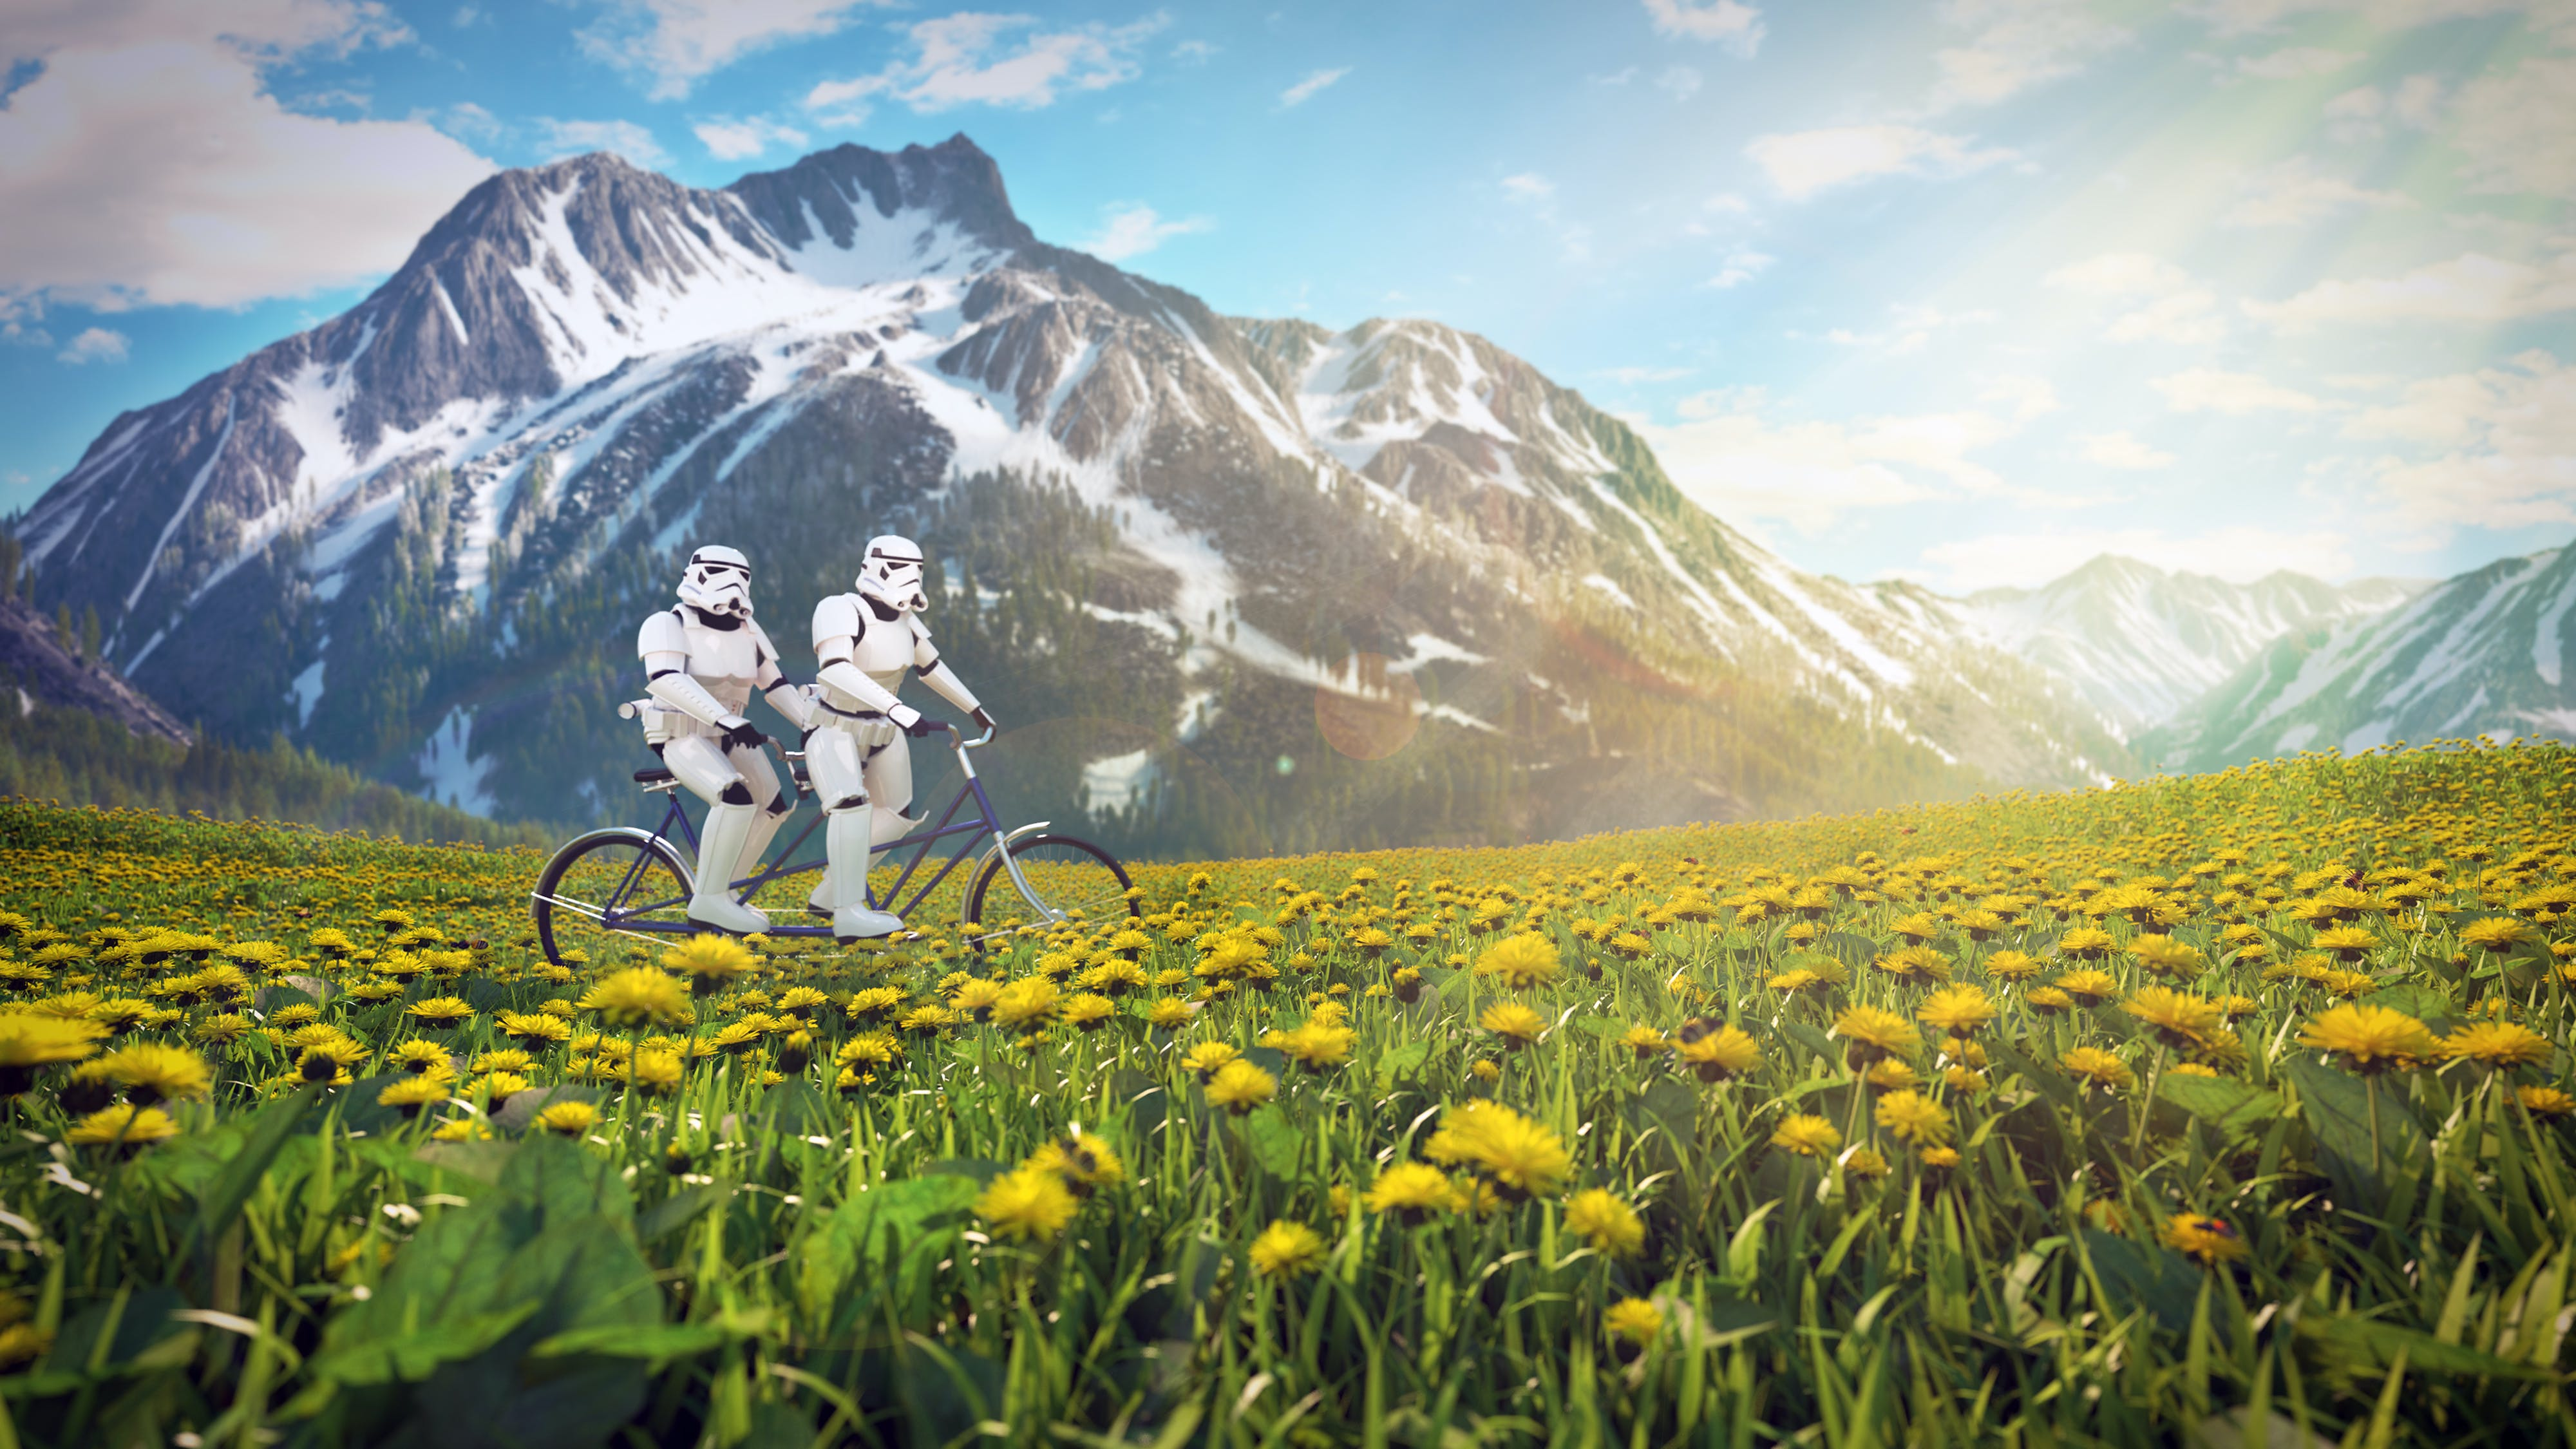 Storm Troopers looking to invest in real estate for their dream home